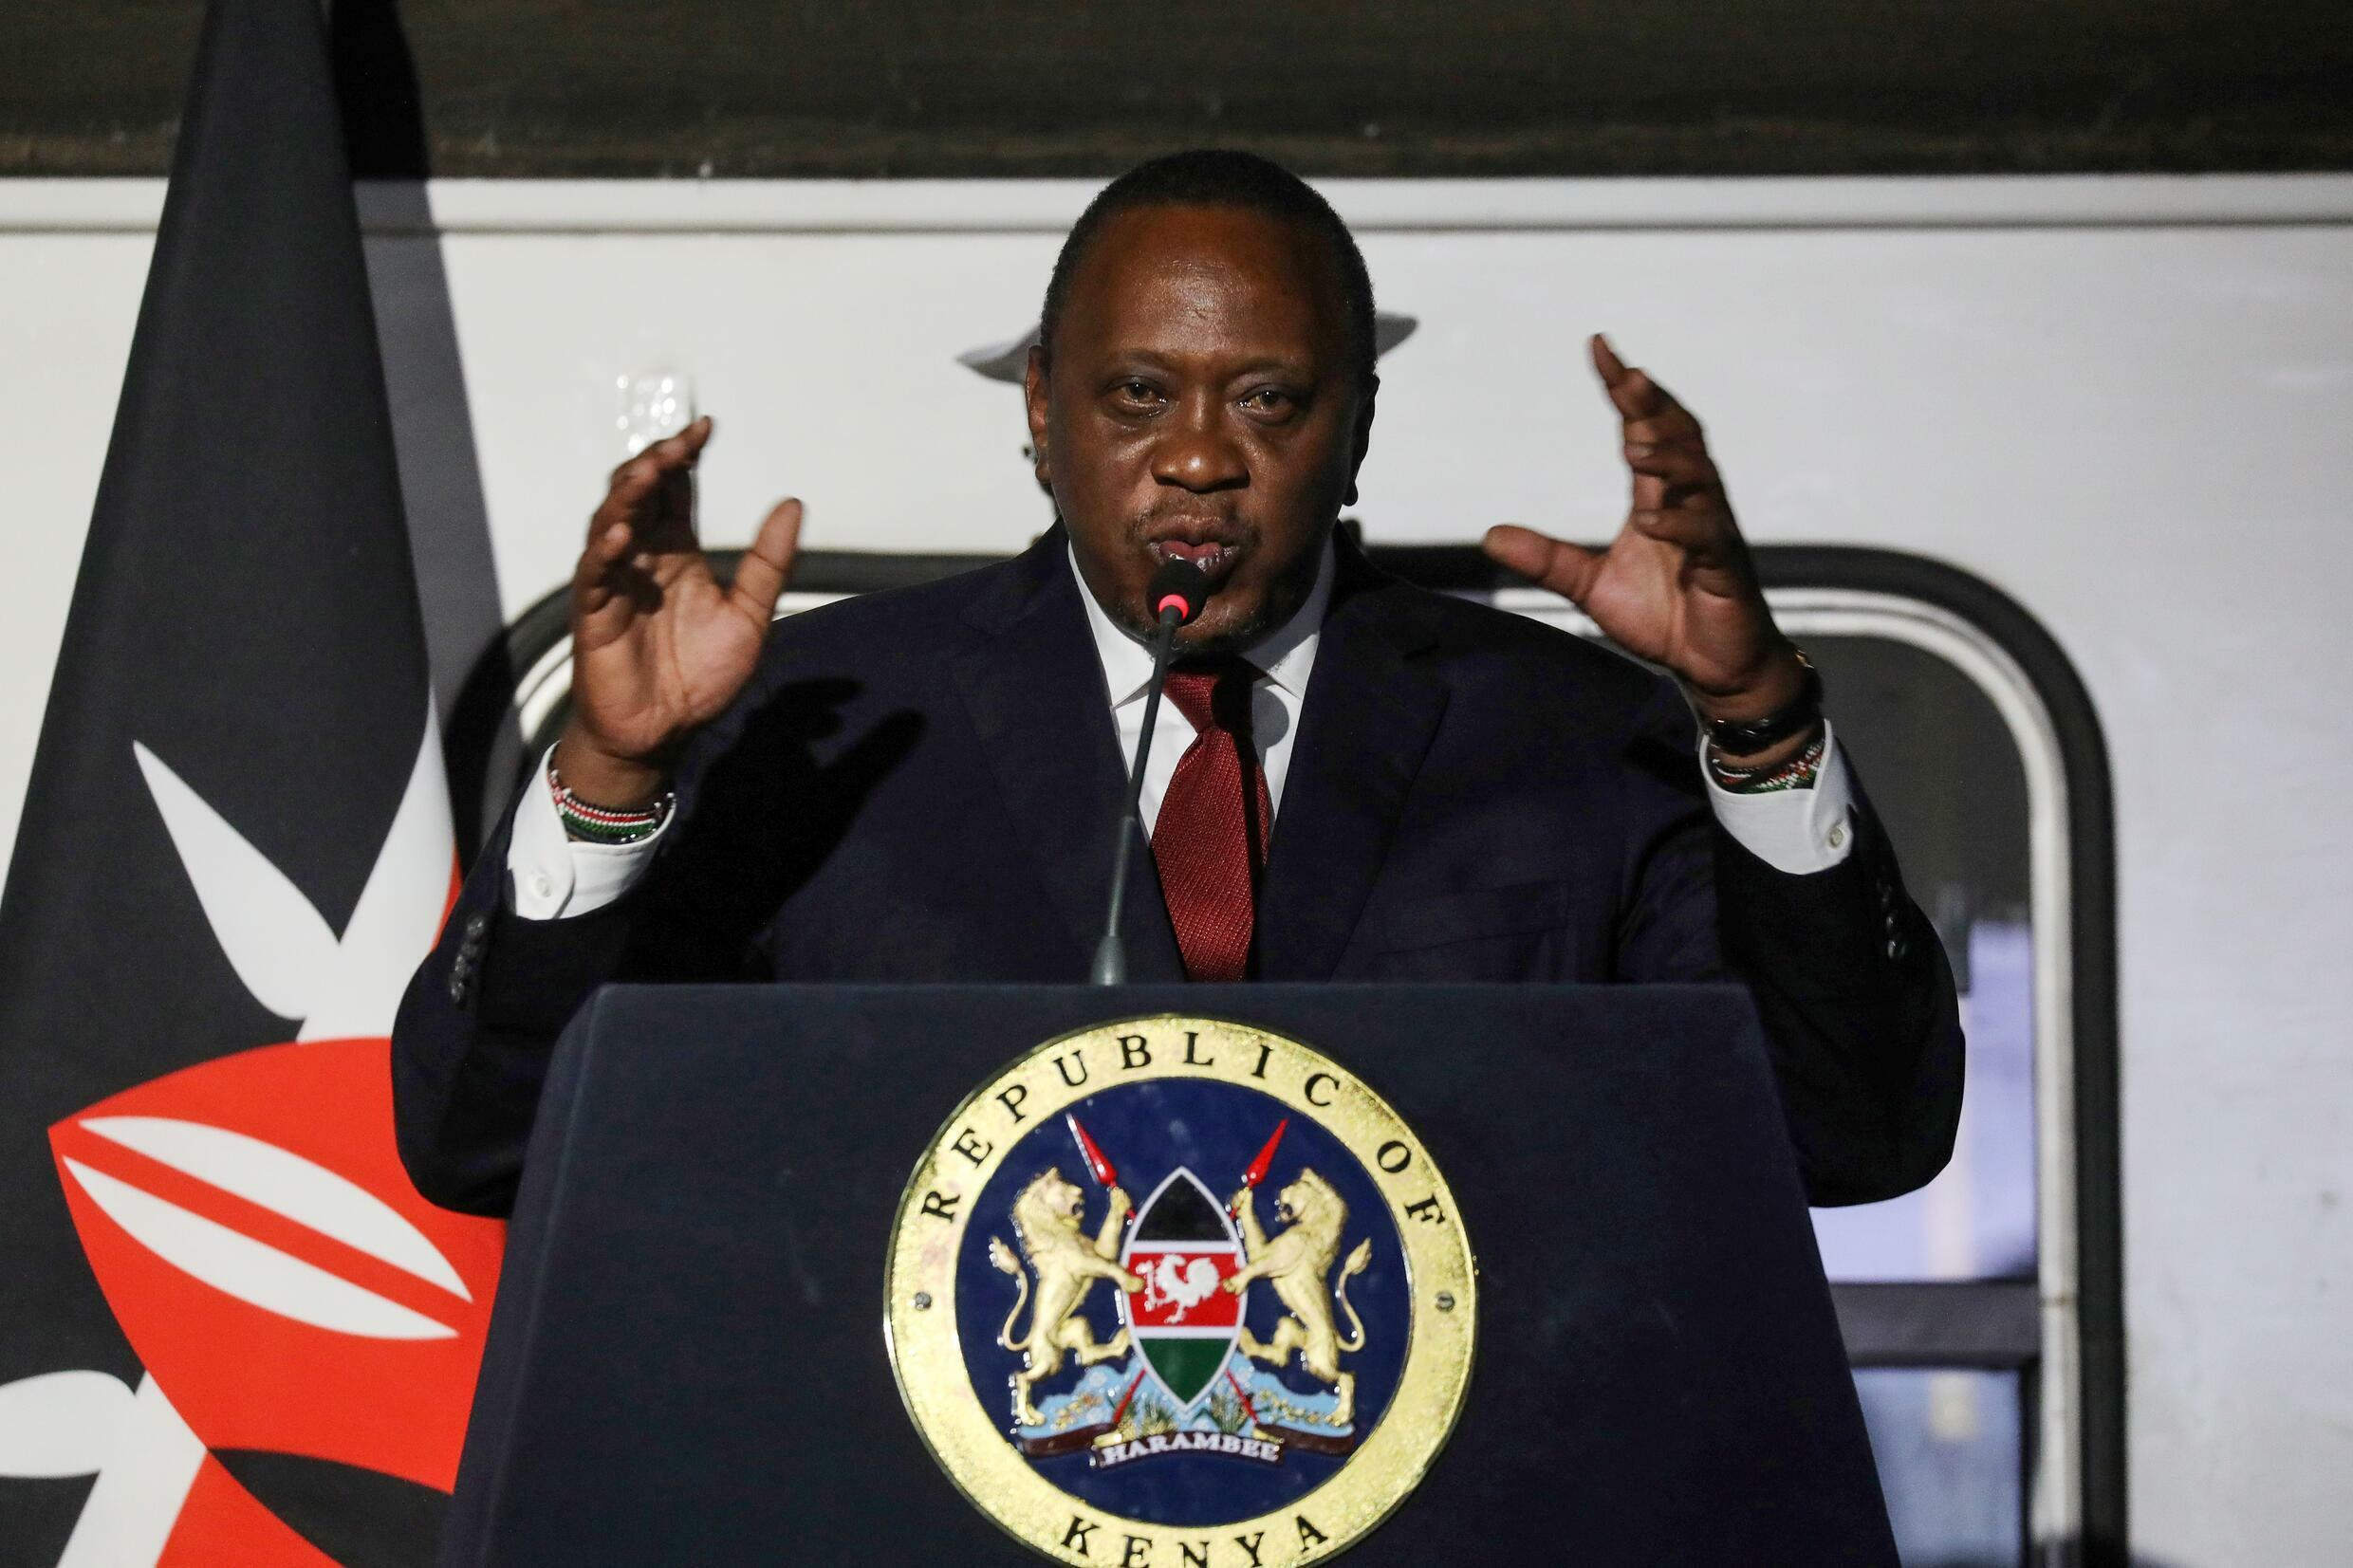 Kenyan President Uhuru Kenyatta has criticised a lower court's ruling that his proposed reforms were illegal